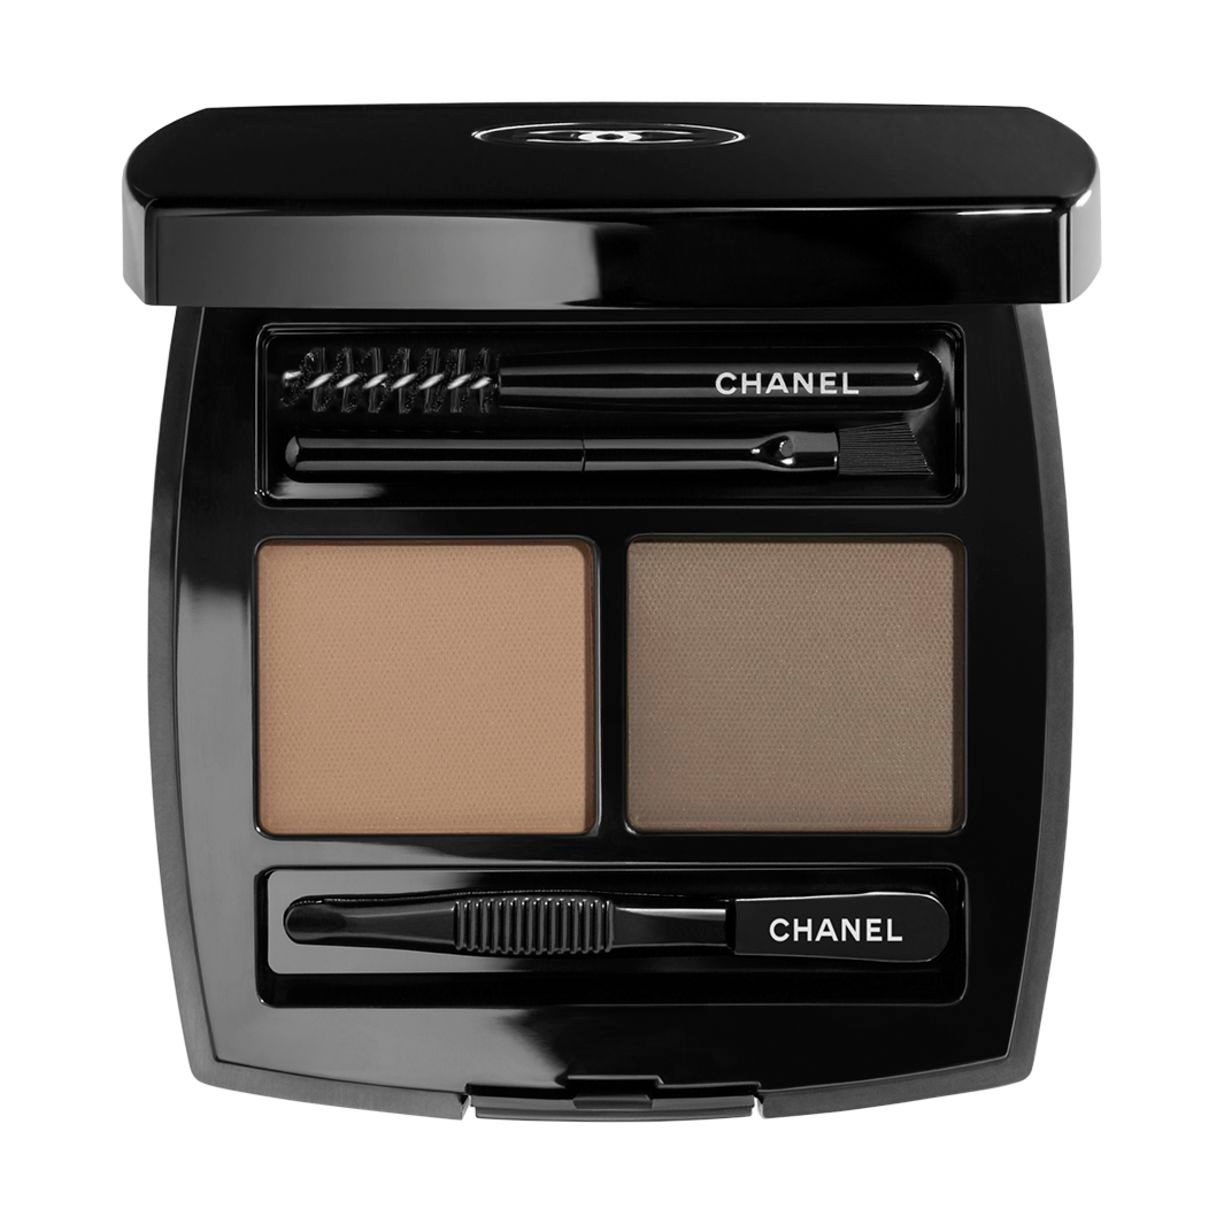 LA PALETTE SOURCILS DE CHANEL DUO WENKBRAUWPOEDERS 40 - NATUREL